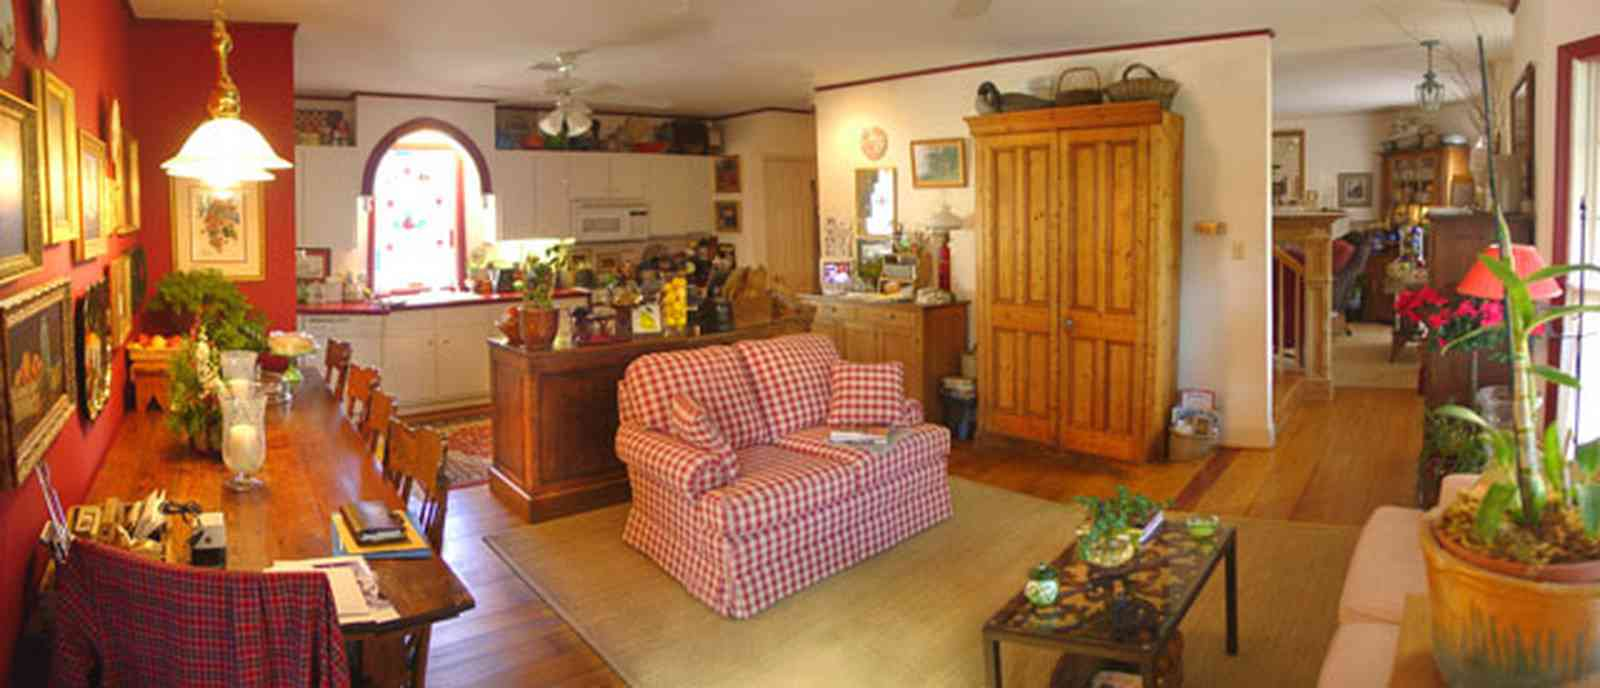 Pensacola:-Seville-Historic-District:-227-East-Intendencia-Street_07.jpg:  sofa, kitchen, folk victorian home, armoire, orchid plant,